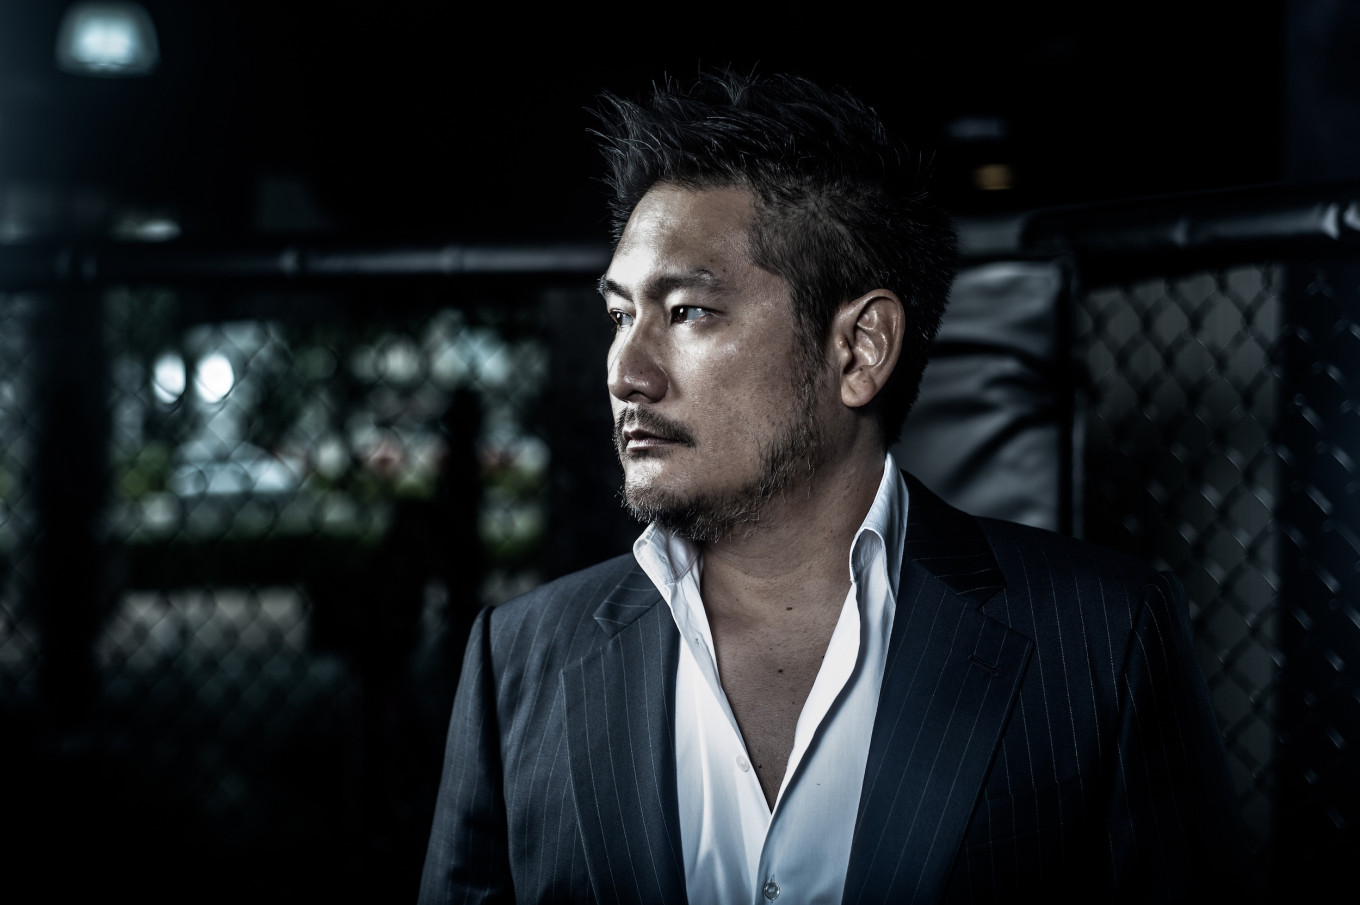 Need inspiration? Watch the new Biopic on ONE founder Chatri Sityodtong